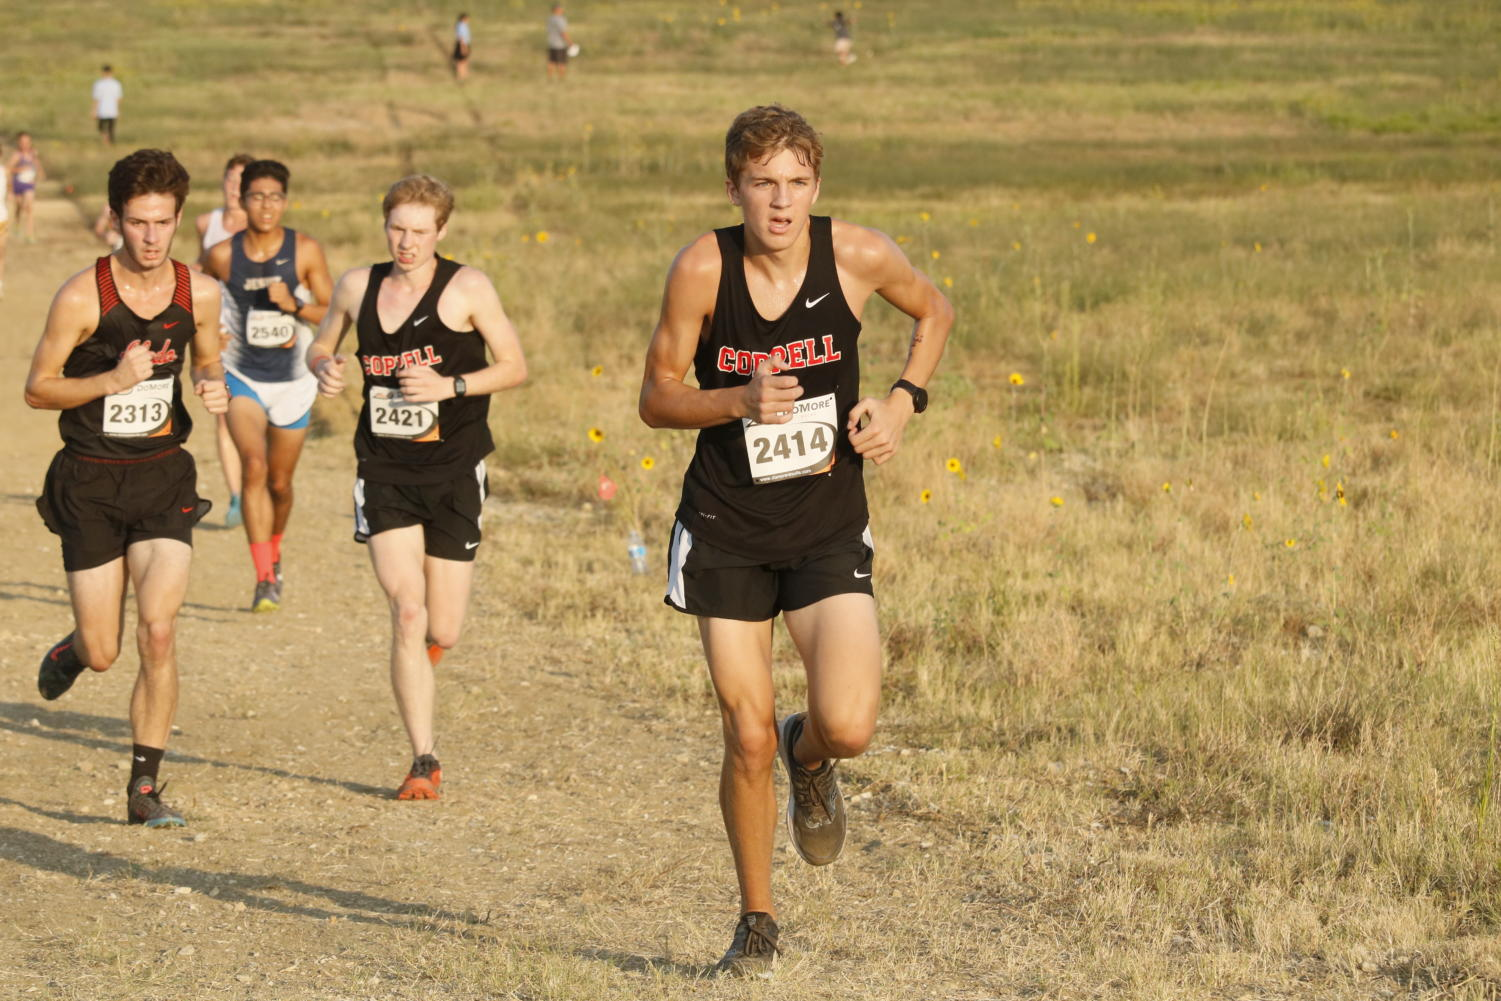 Coppell junior runner Andrew Crichton heads up the last hill on the course at Coppell Middle School West. The elite varsity boys placed fifth on Saturday at their only home meet of the season, the Coppell Invitational.